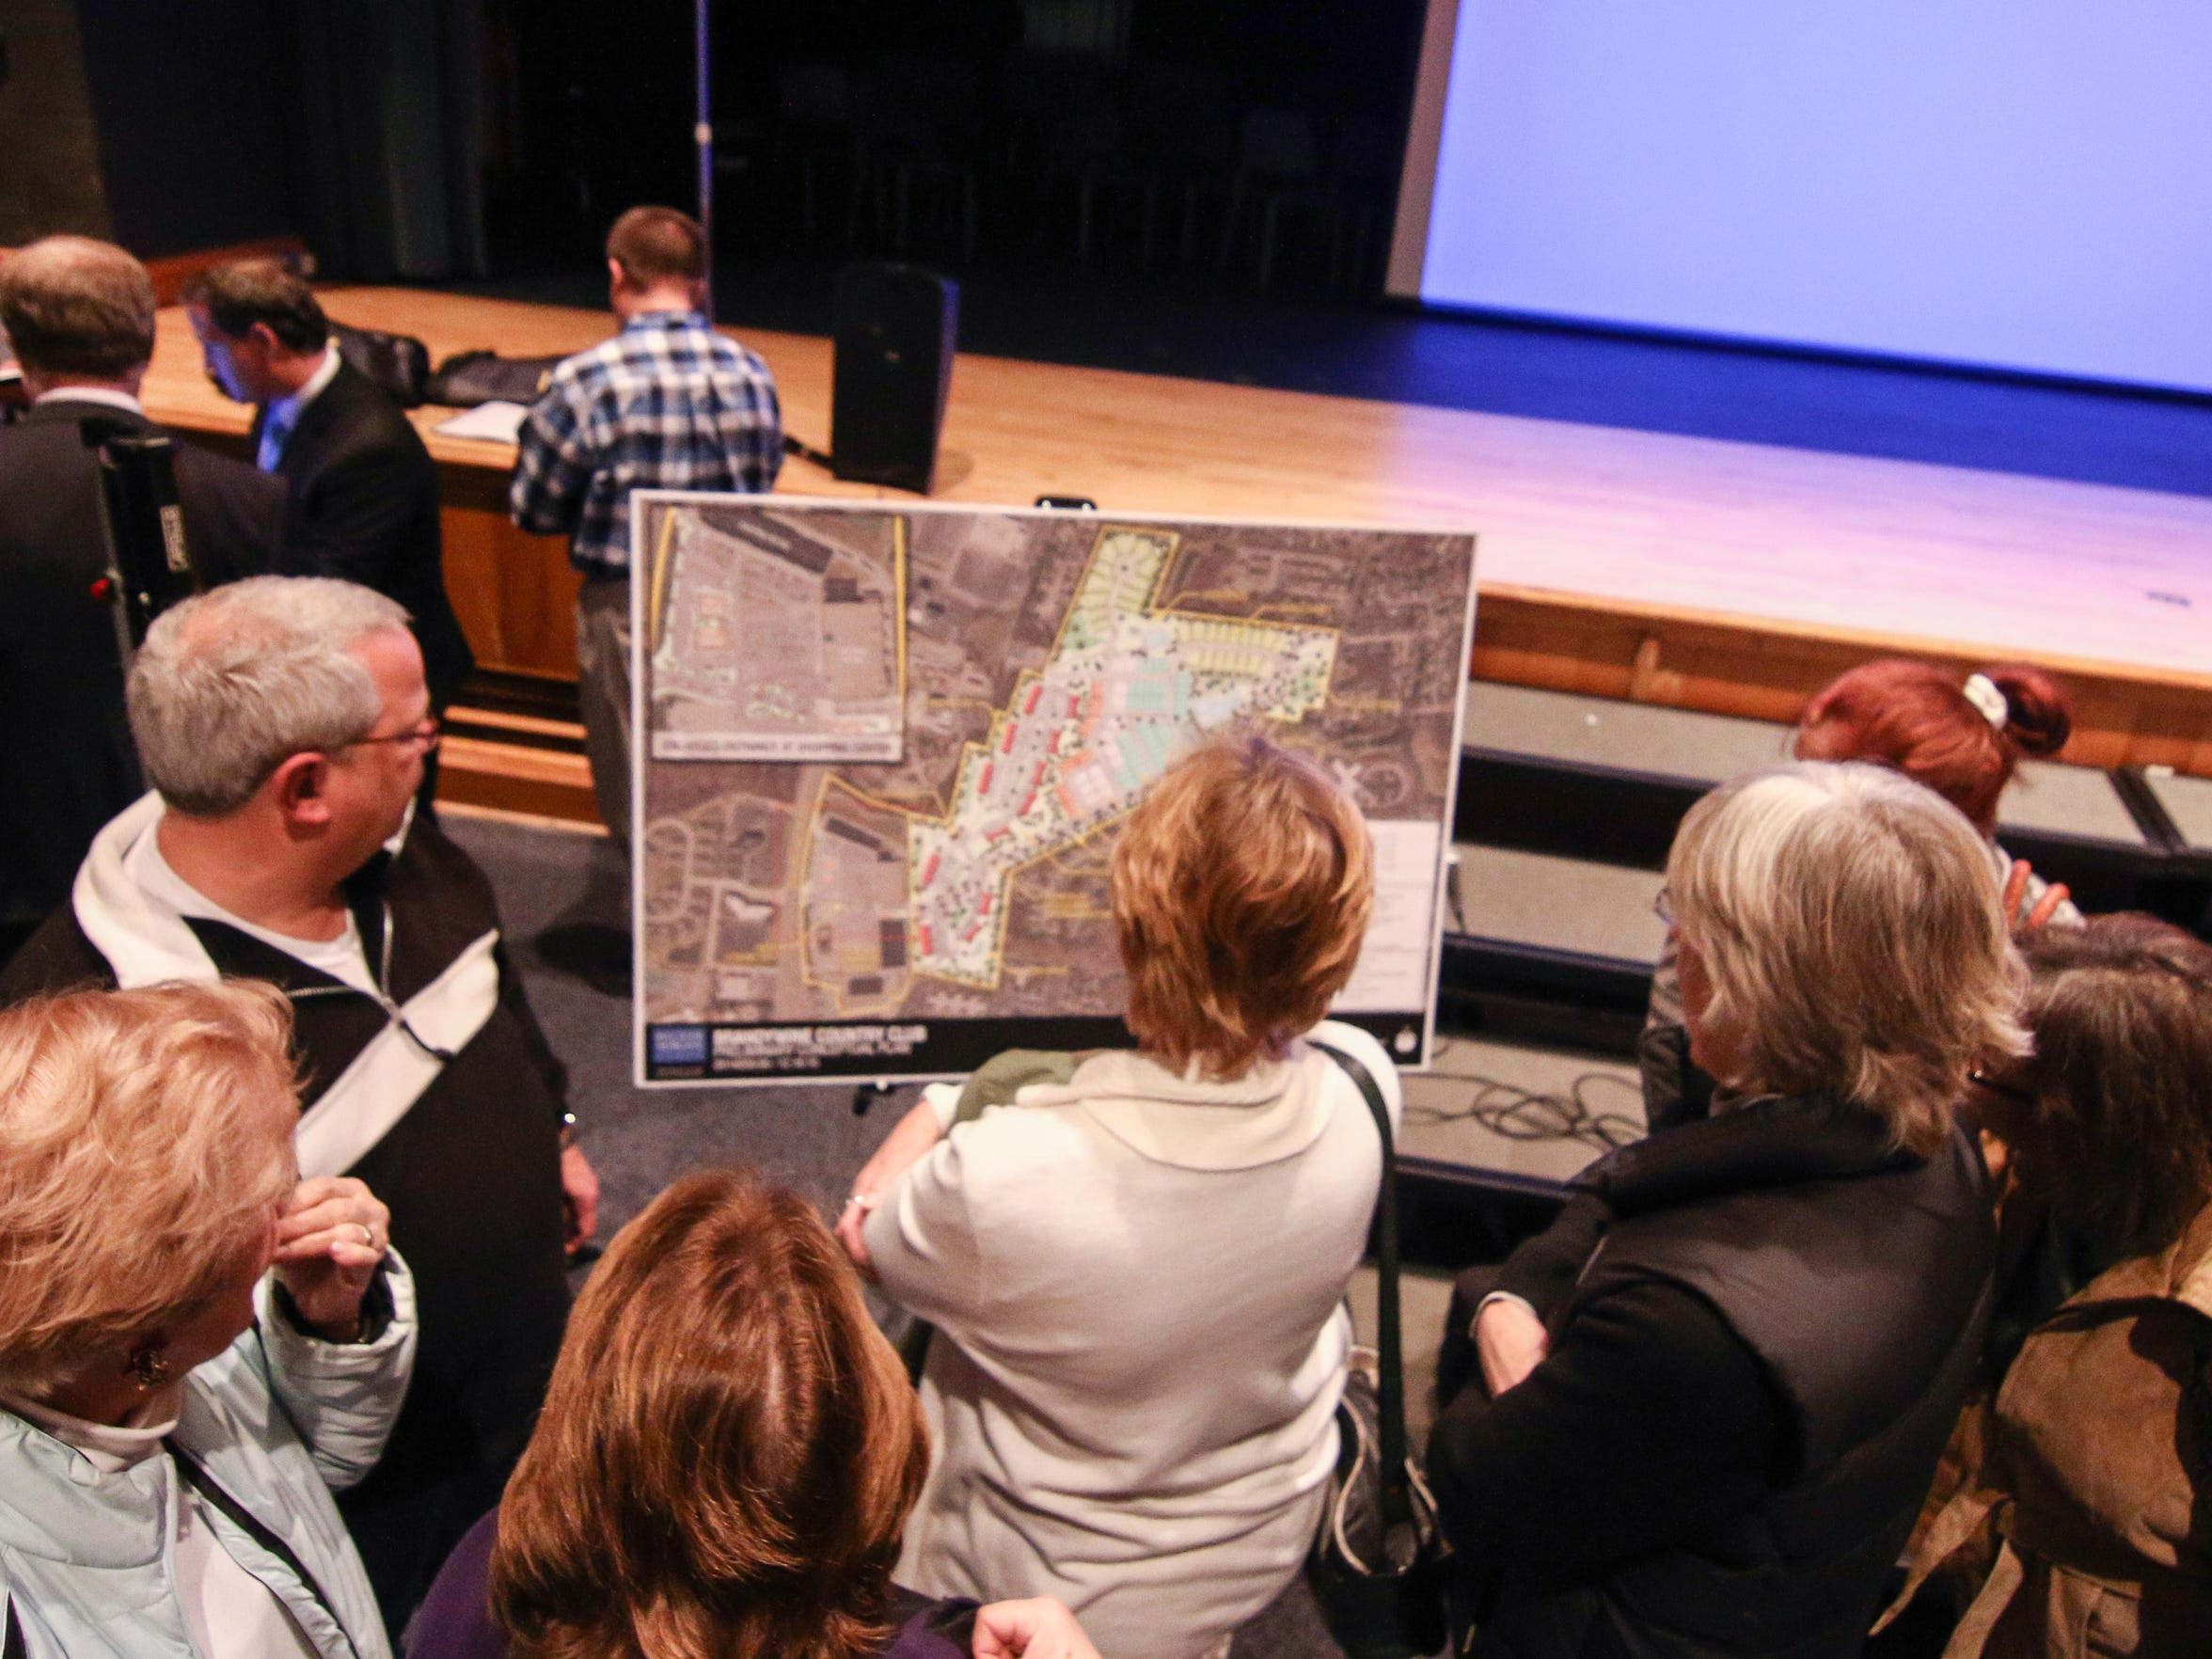 Residents review preliminary conceptual plans for the development of Brandywine Country Club during a public meeting Dec. 10 at Brandywine High School in Wilmington.